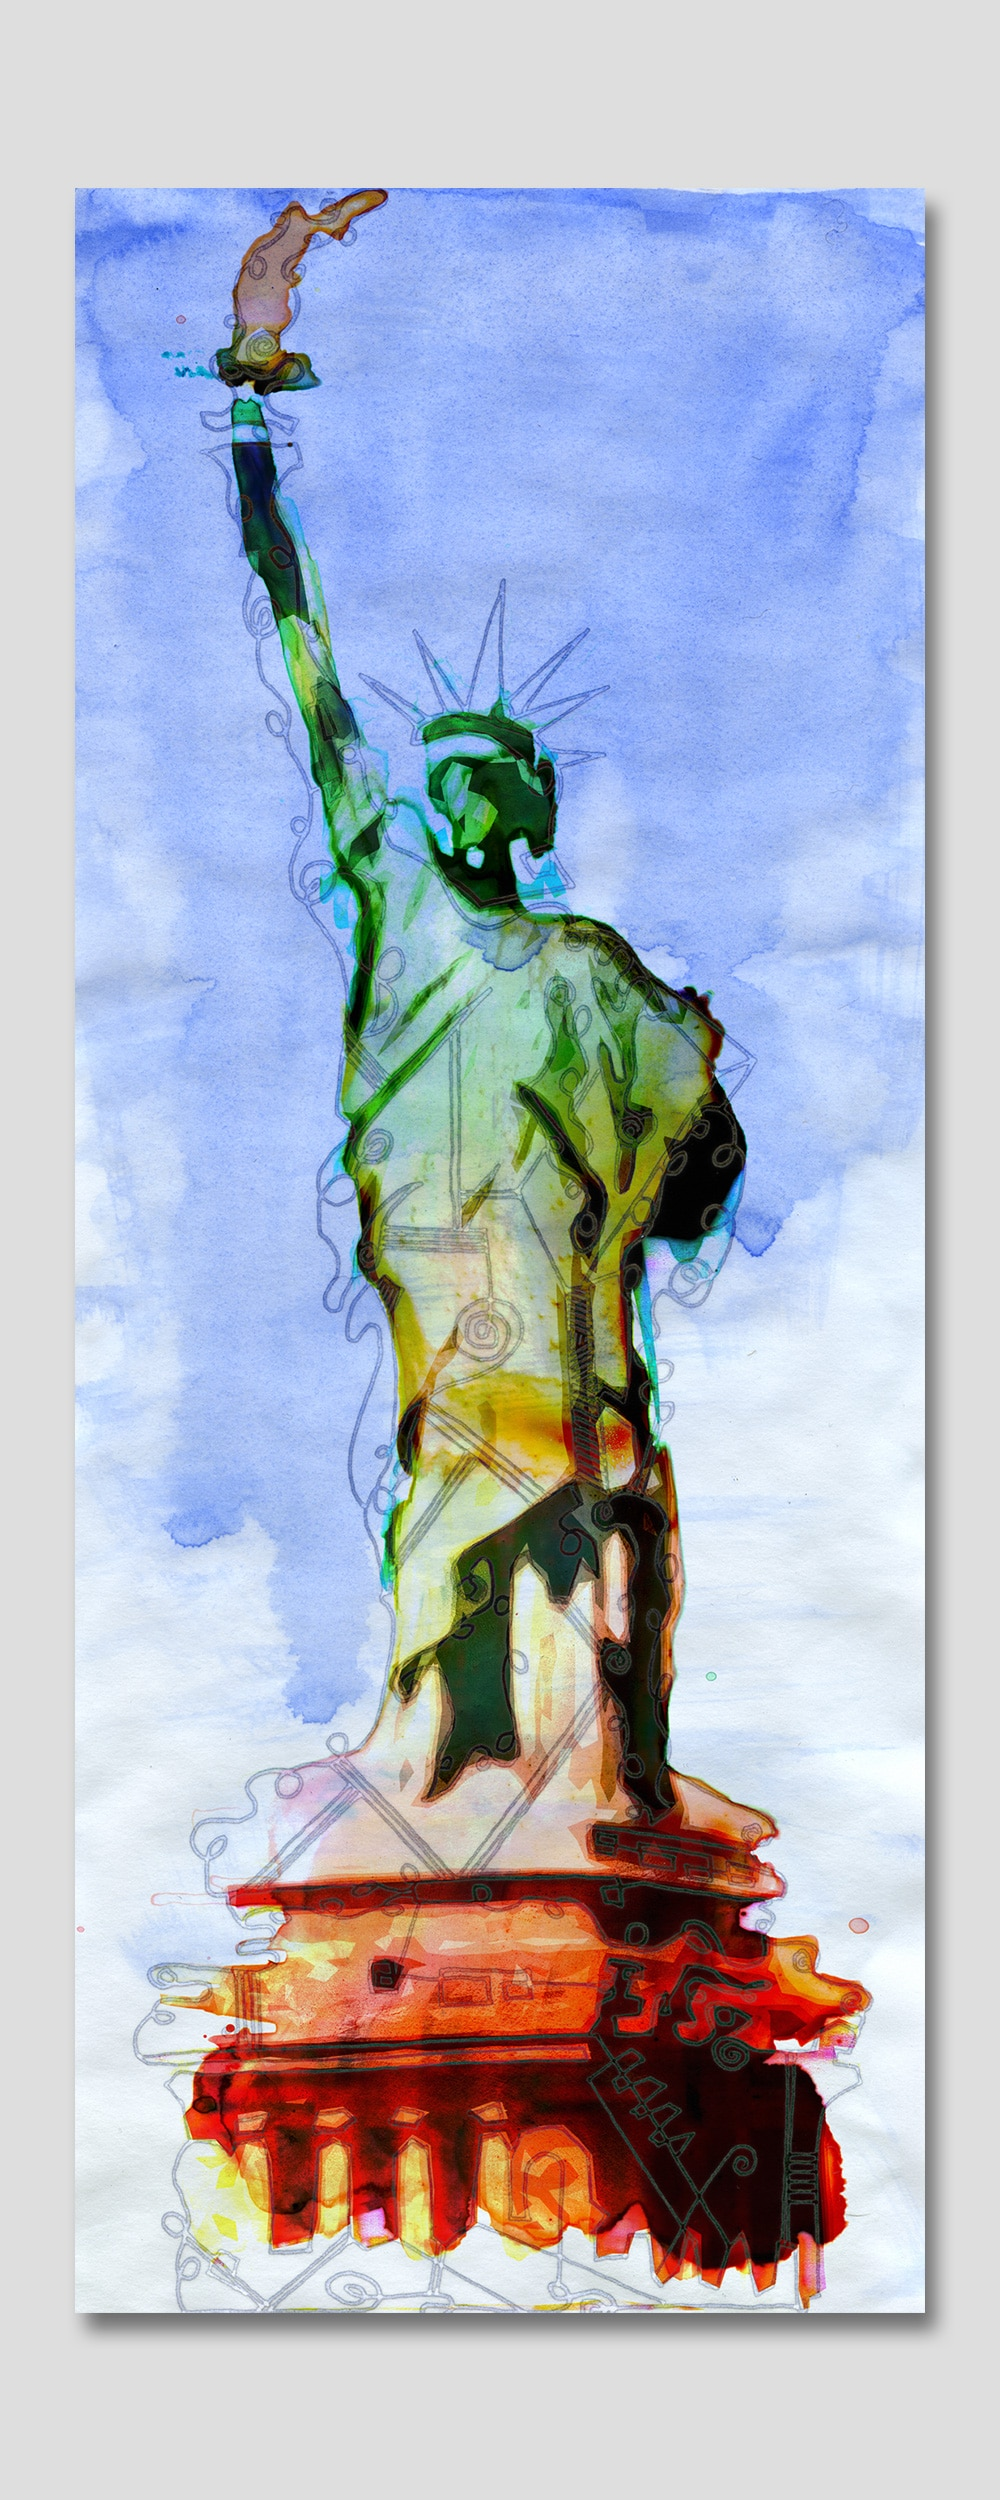 portrait of the statue of liberty